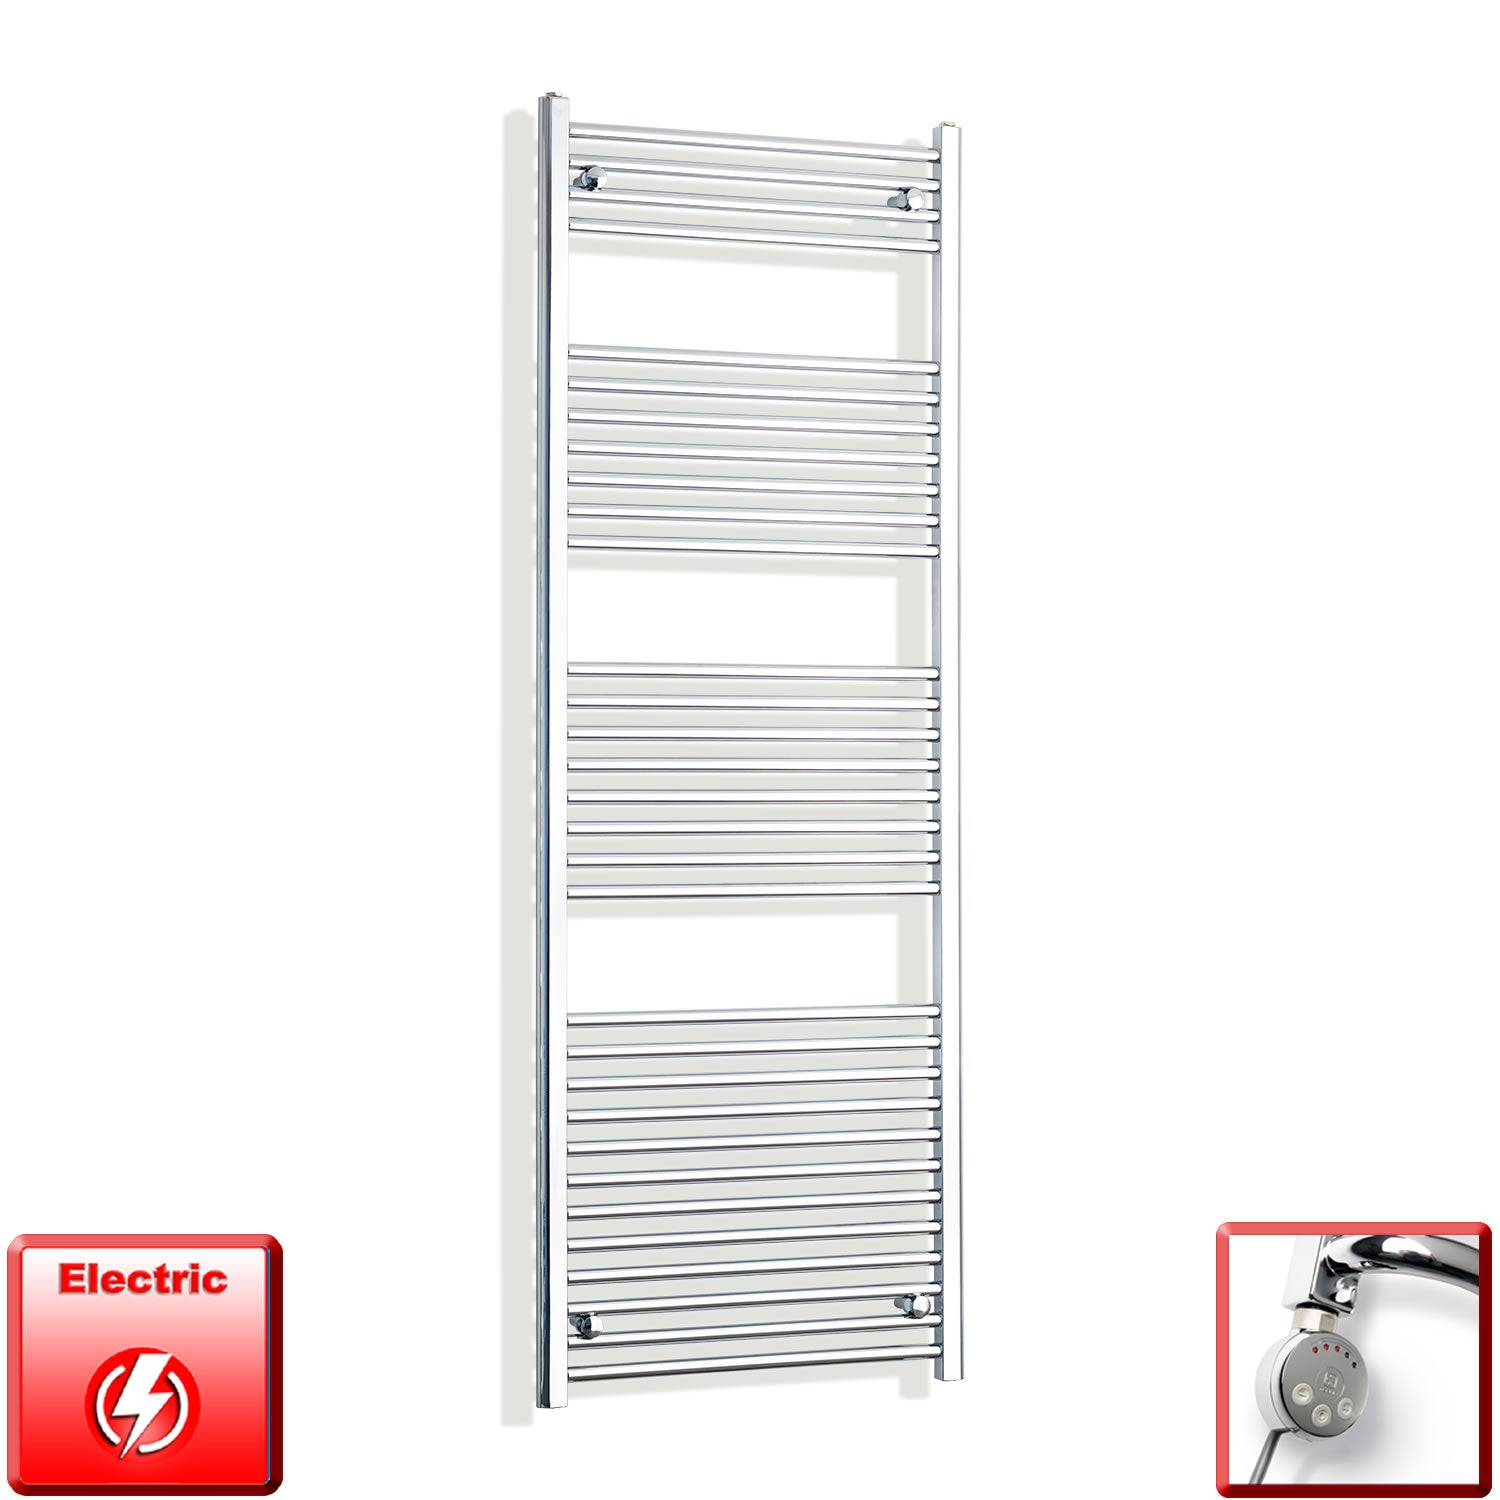 650mm Wide 1800mm High Pre-Filled Chrome Electric Towel Rail Radiator With Thermostatic MEG Element